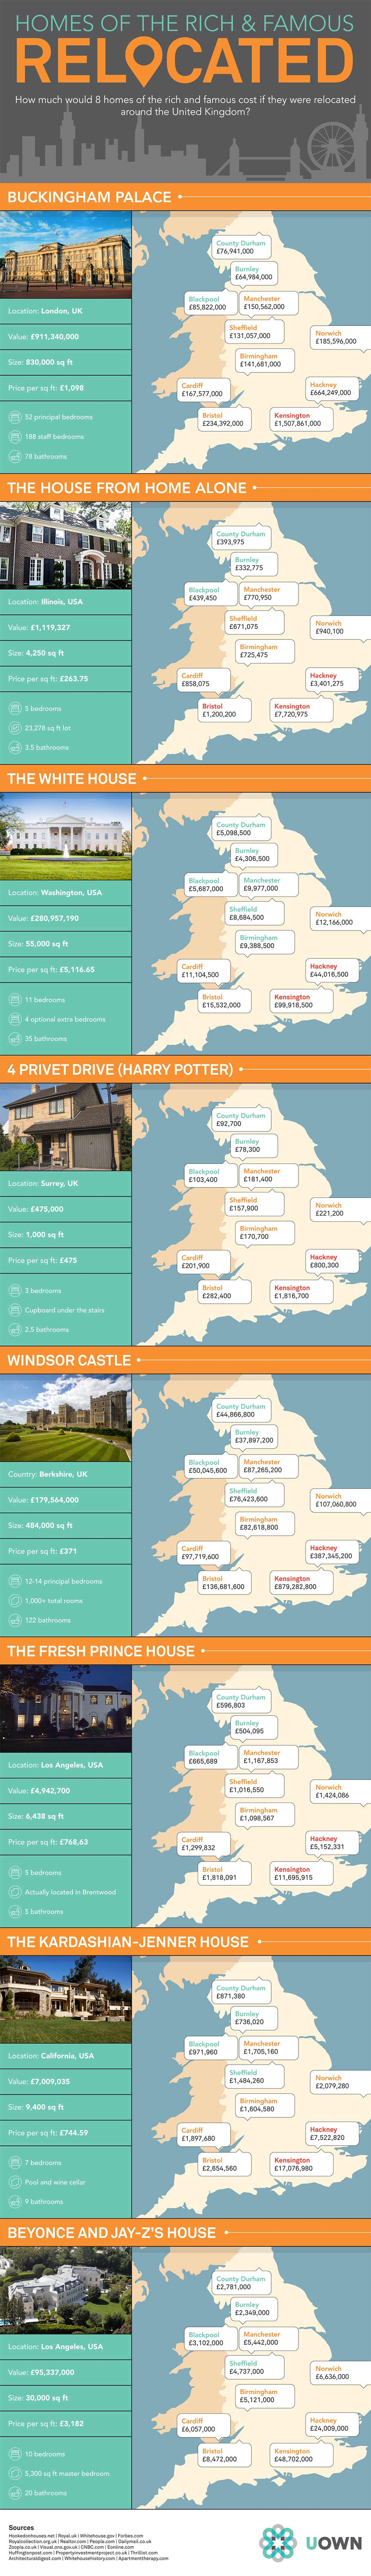 how much would homes of the rich and famous cost in different parts of the UK?